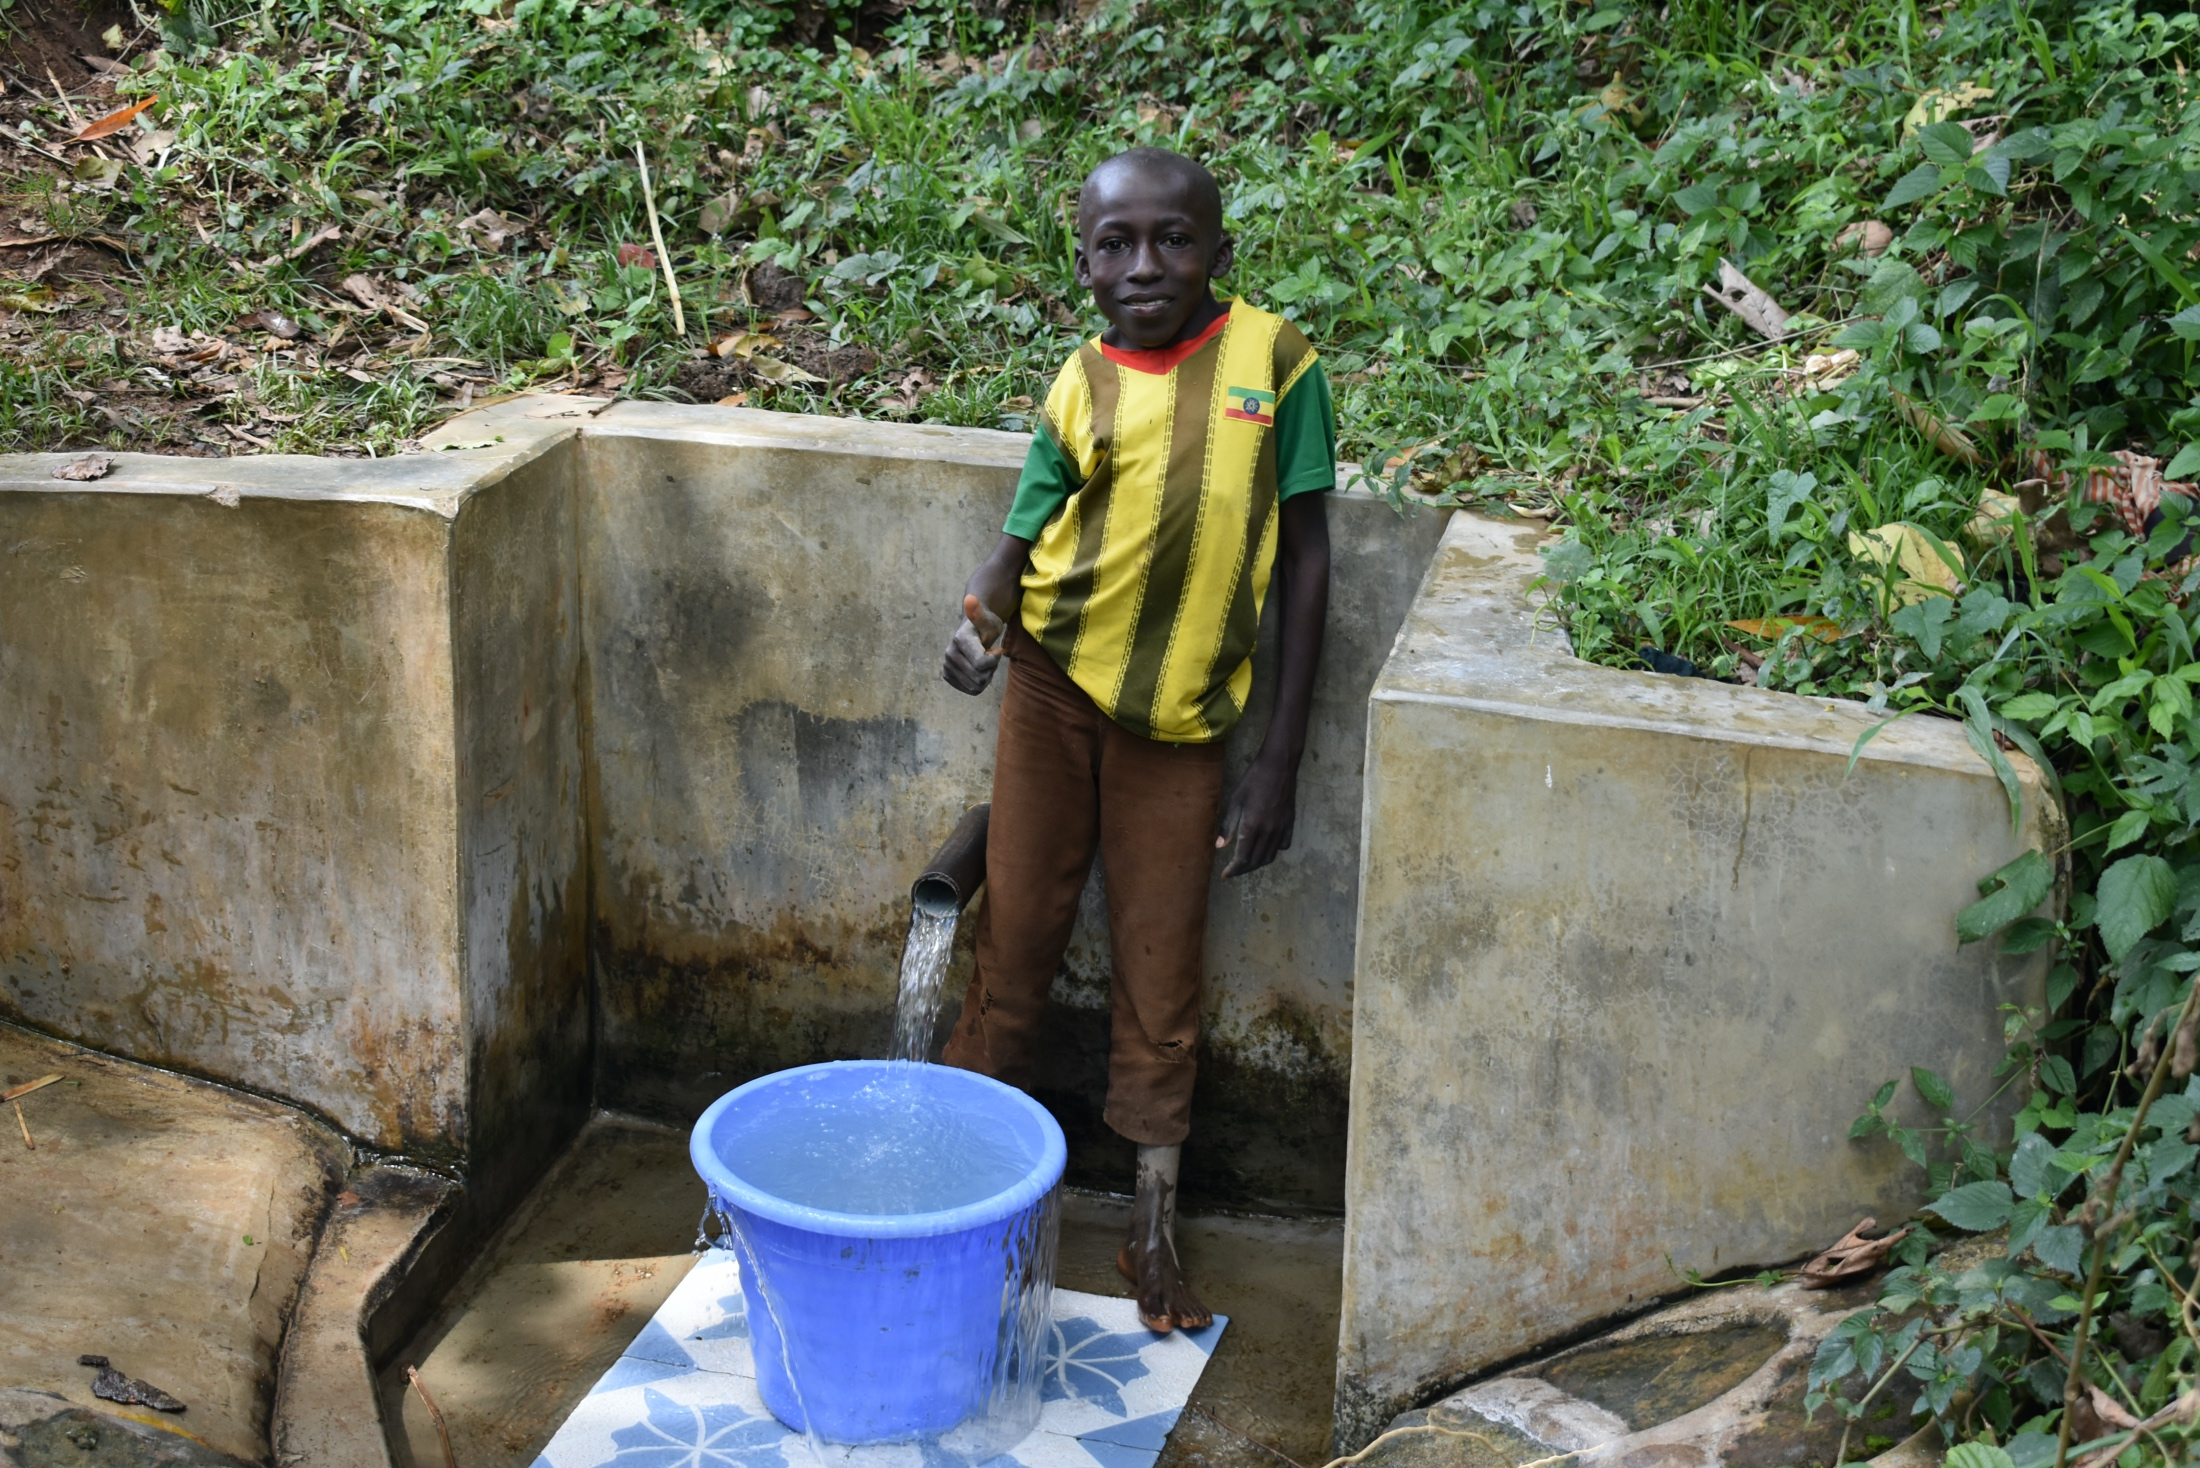 The Water Project : 11-kenya18314-litrelius-gives-a-thumbs-up-at-asena-spring